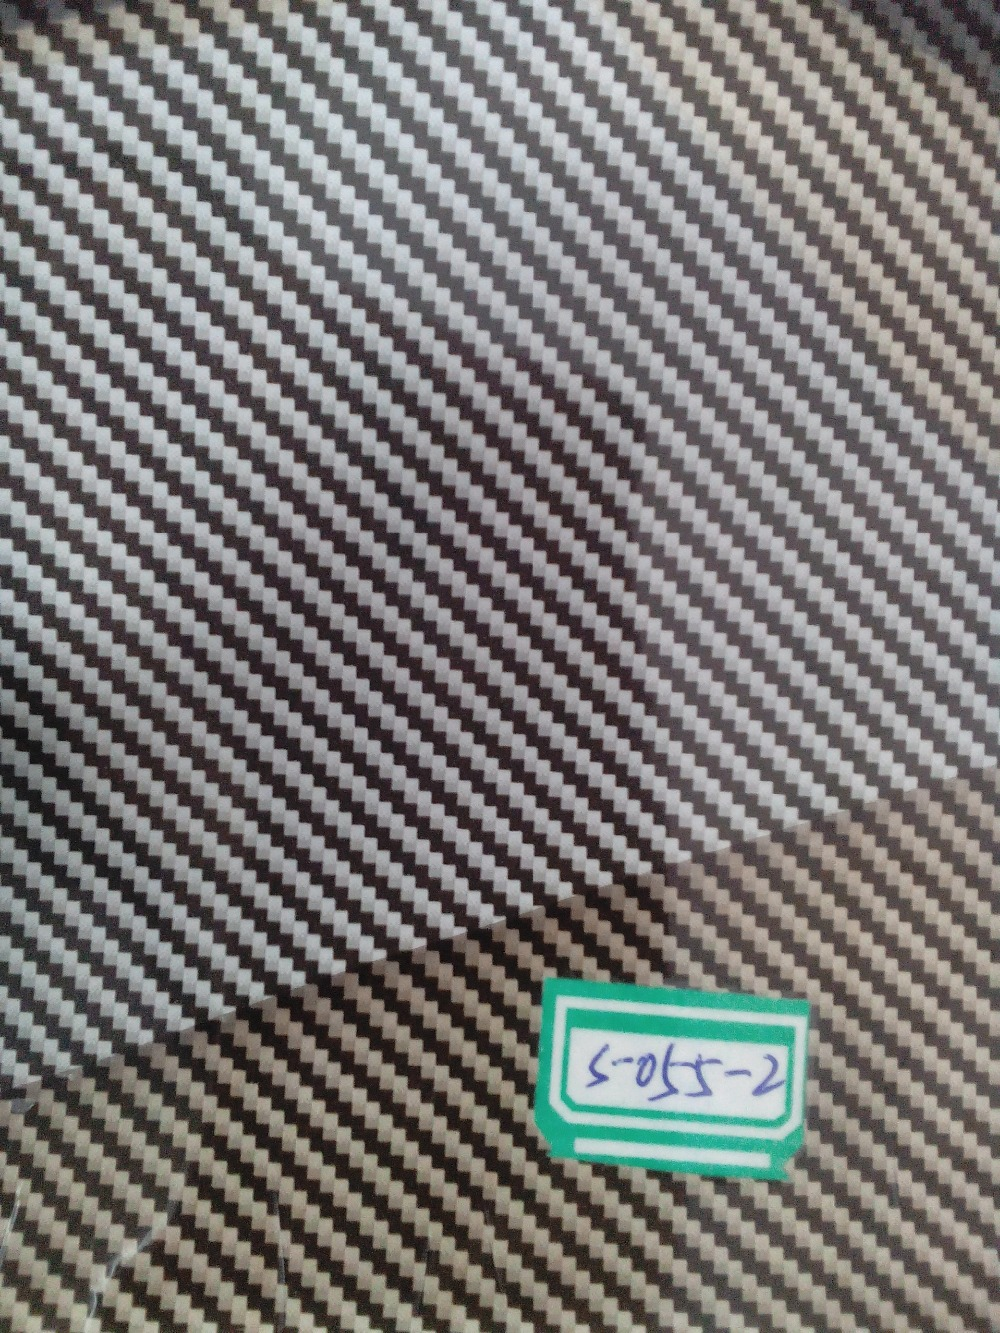 Fast shipping width 100cm carbon fiber pattern Water Transfer Printing Film(China (Mainland))